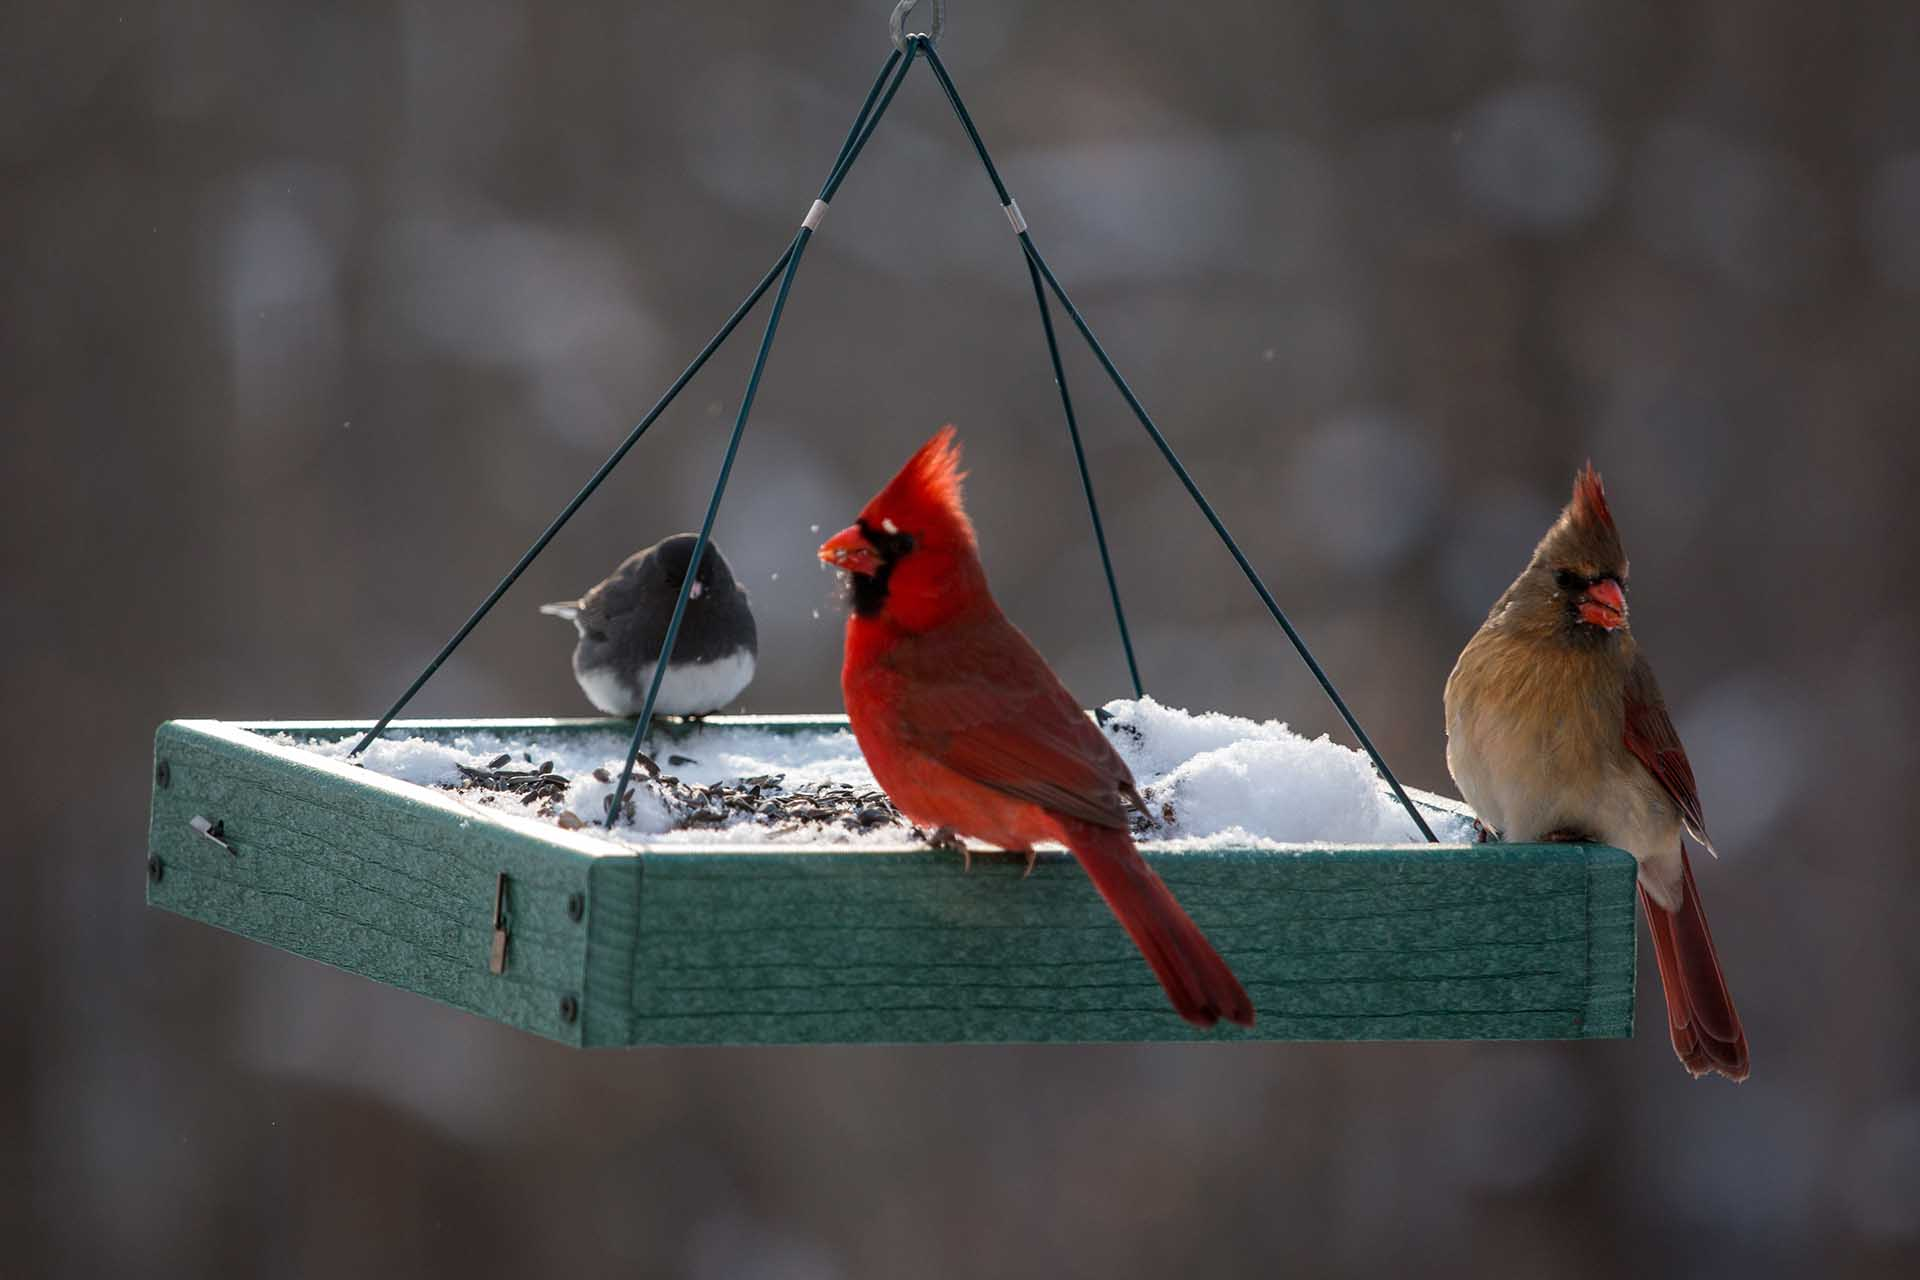 Pair of Red Cardinal Birds at a Feeder in the Winter Snow in Maryland Mid Atlantic USA.